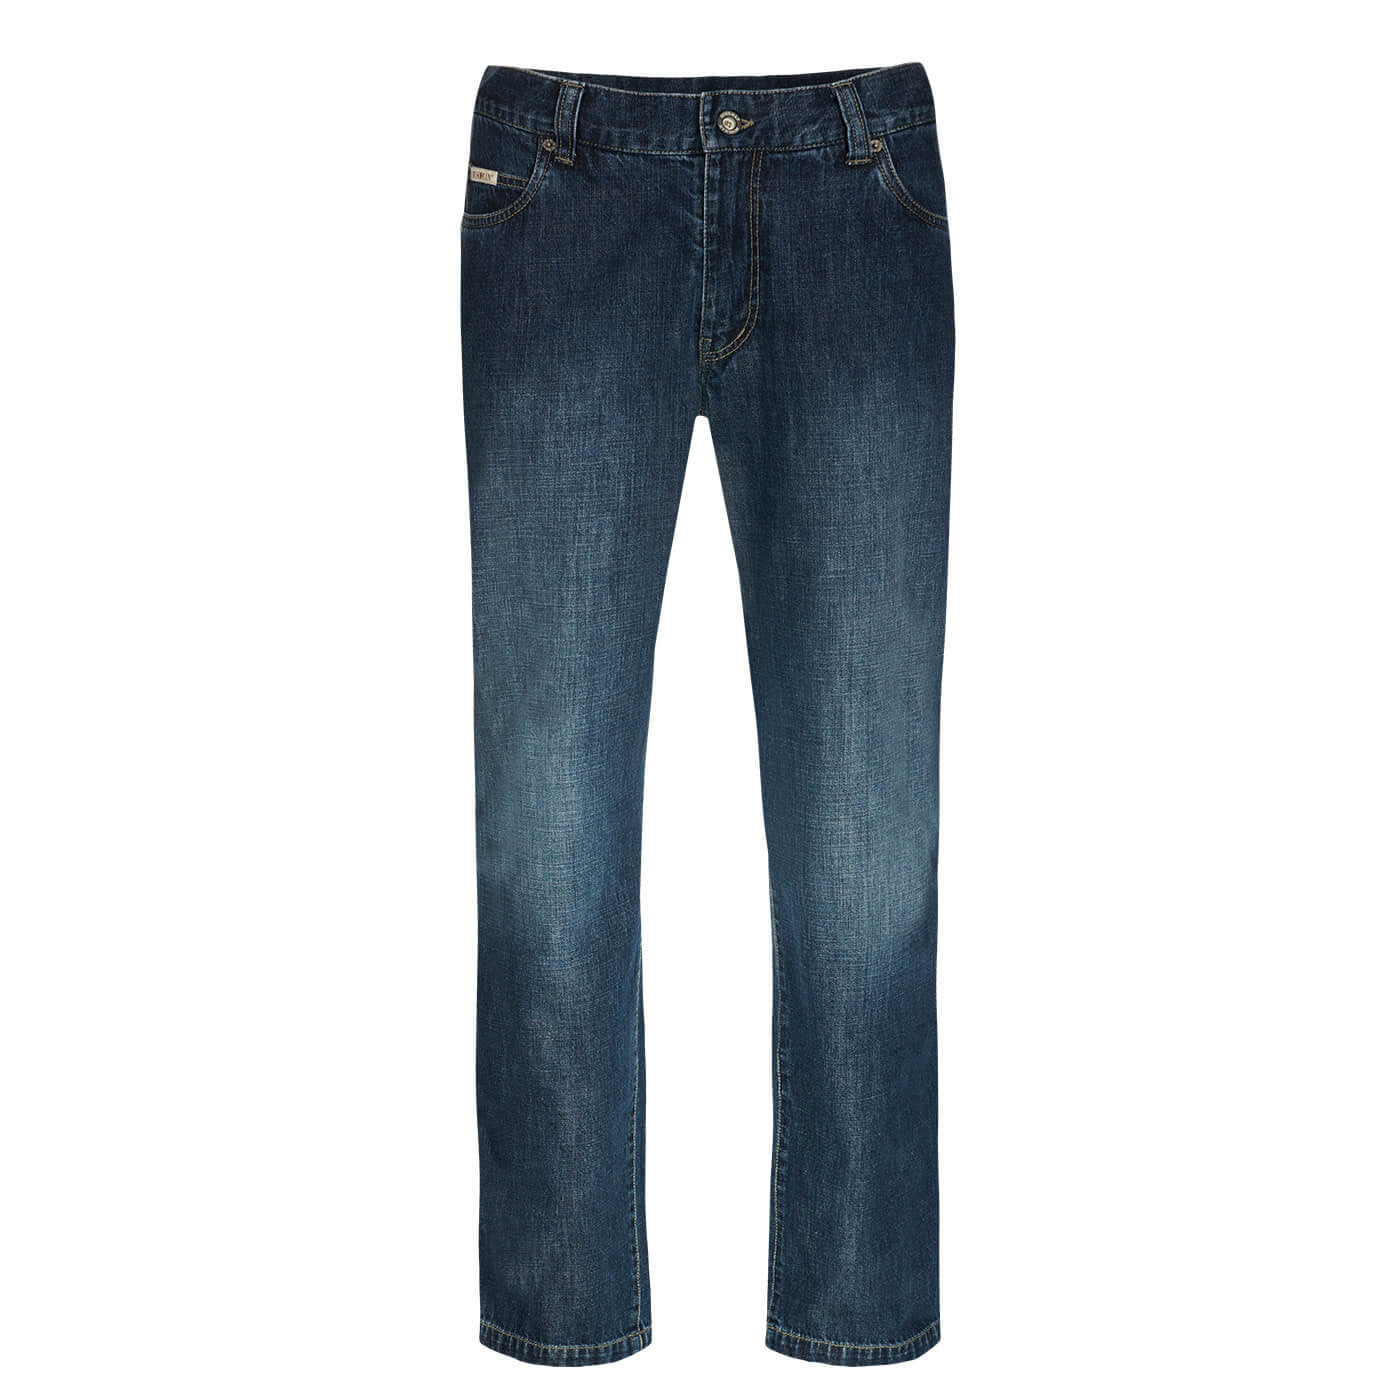 BUSHMANSHOP FRANKLIN MEN'S BLUE COTTON JEANS TROUSERS